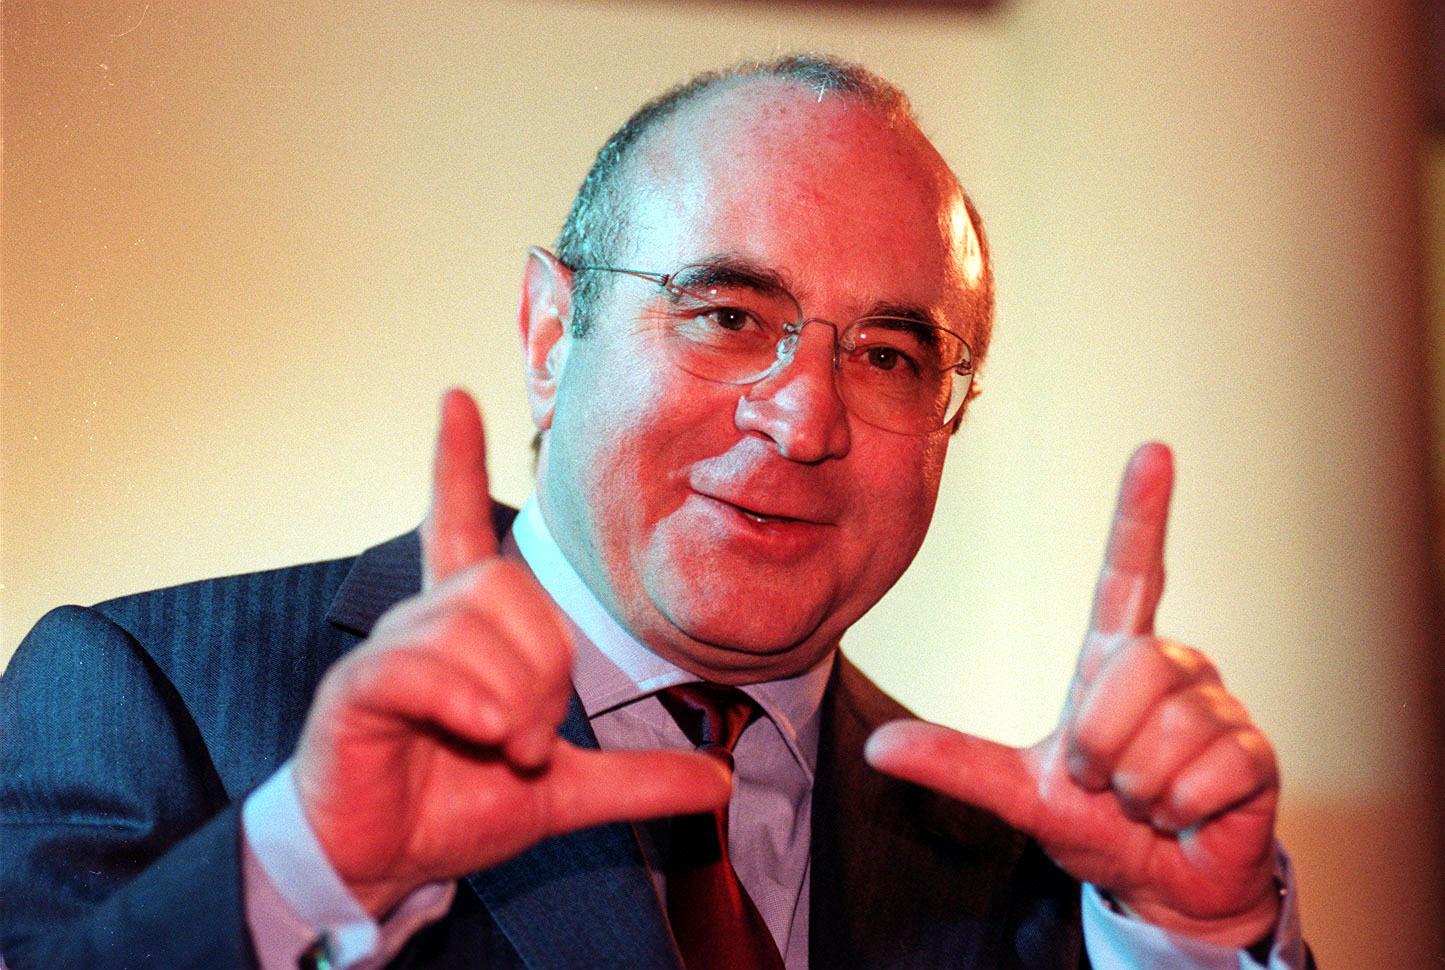 Bob Hoskins death. File photo dated 27/3/1996 of actor Bob Hoskins, who has died following pneumonia at the age of 71, his ag